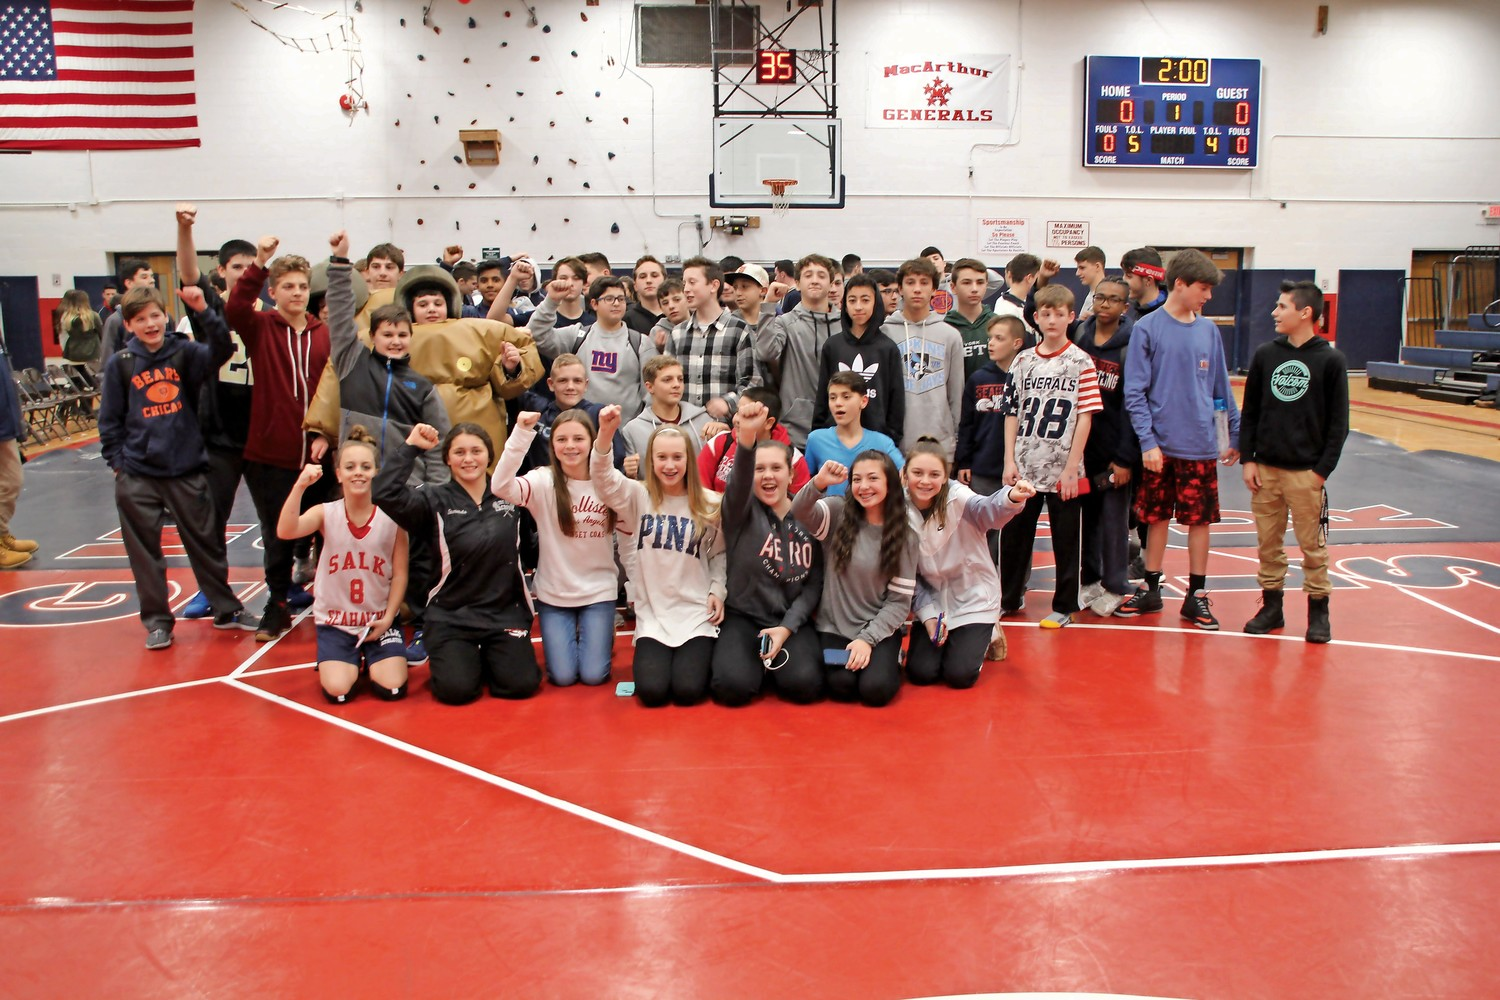 Students from MacArthur High School and Jonas E. Salk Middle School attended the third annual sumo-wresting competition, on Jan. 11 to show support for a local community member.